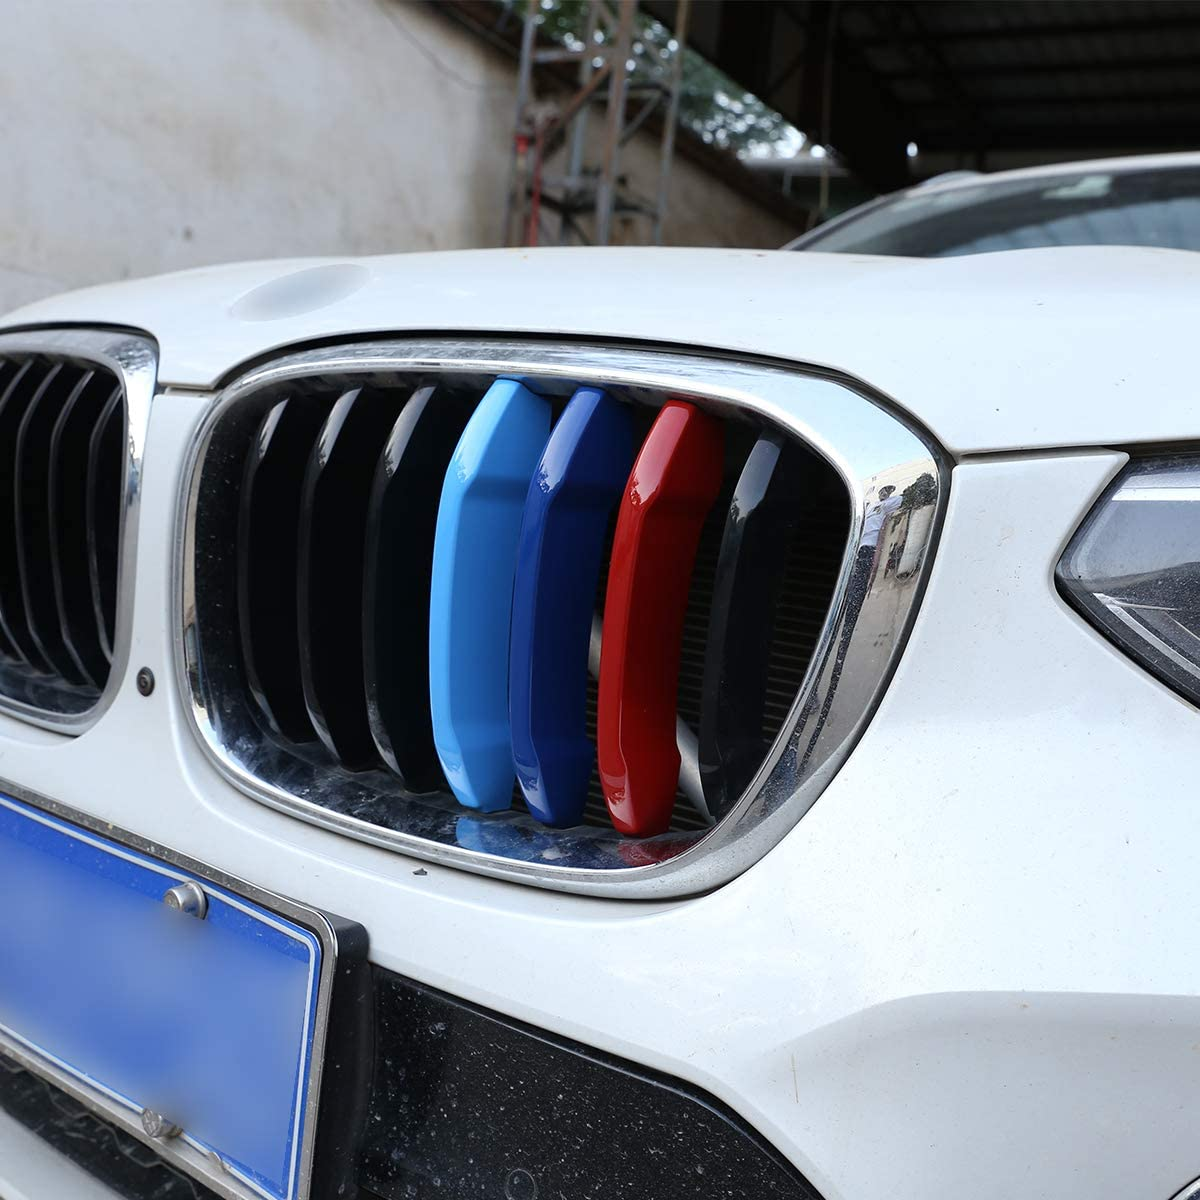 2011-2017 BMW X3 X4 LLKUANG 3 Color Front Grill Cover Trim ABS Chrome Sequin for BMW X3 X4 f25 F26 2011-2017